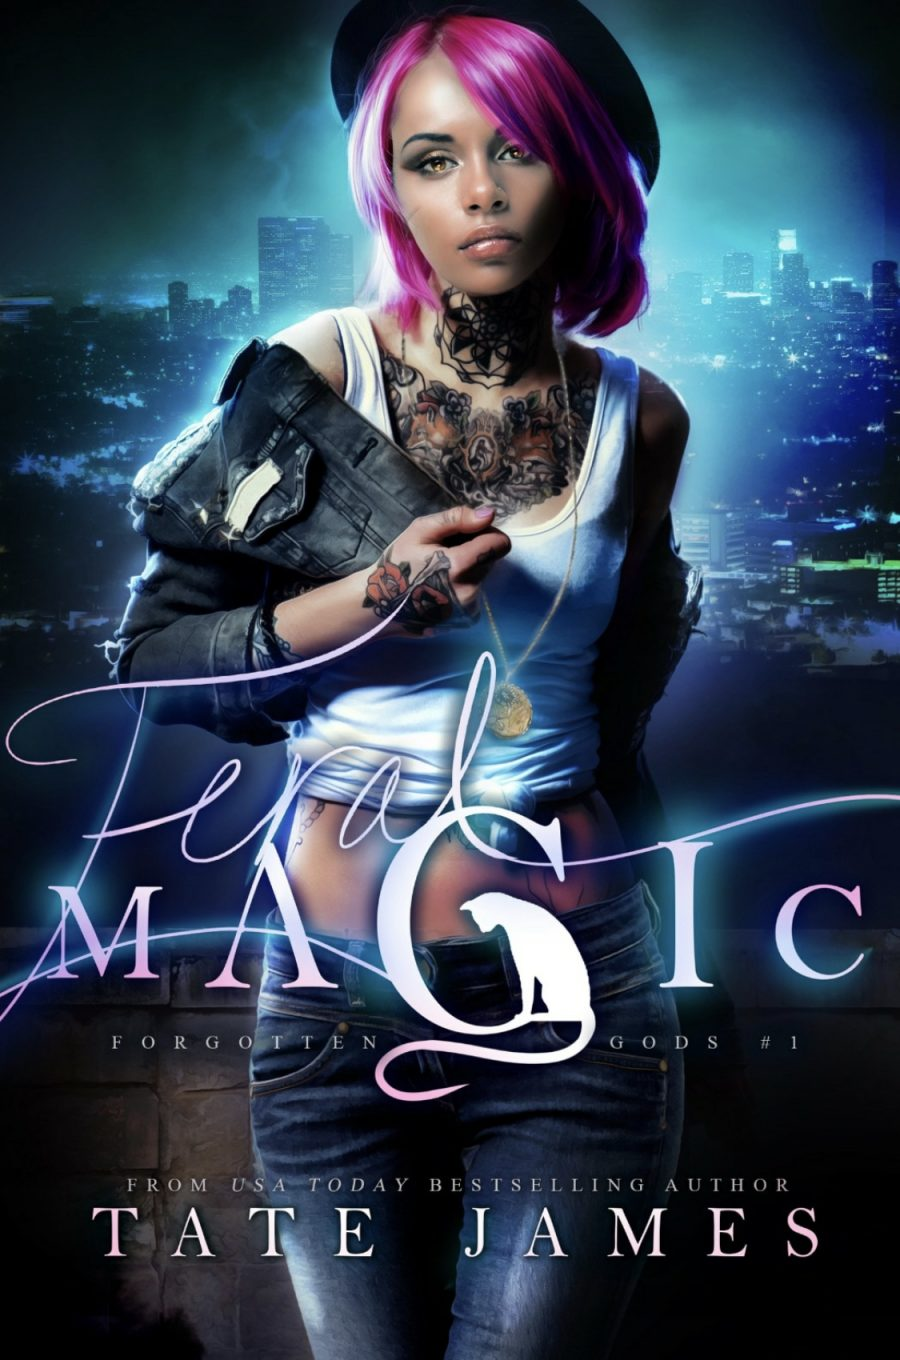 Feral Magic by Tate James - A Book Review #BookReview #Review #FastBurn #RH #ReverseHarem #WhyChoose #PNR #Shifters #EgyptianMyth @TateJamesAuthor